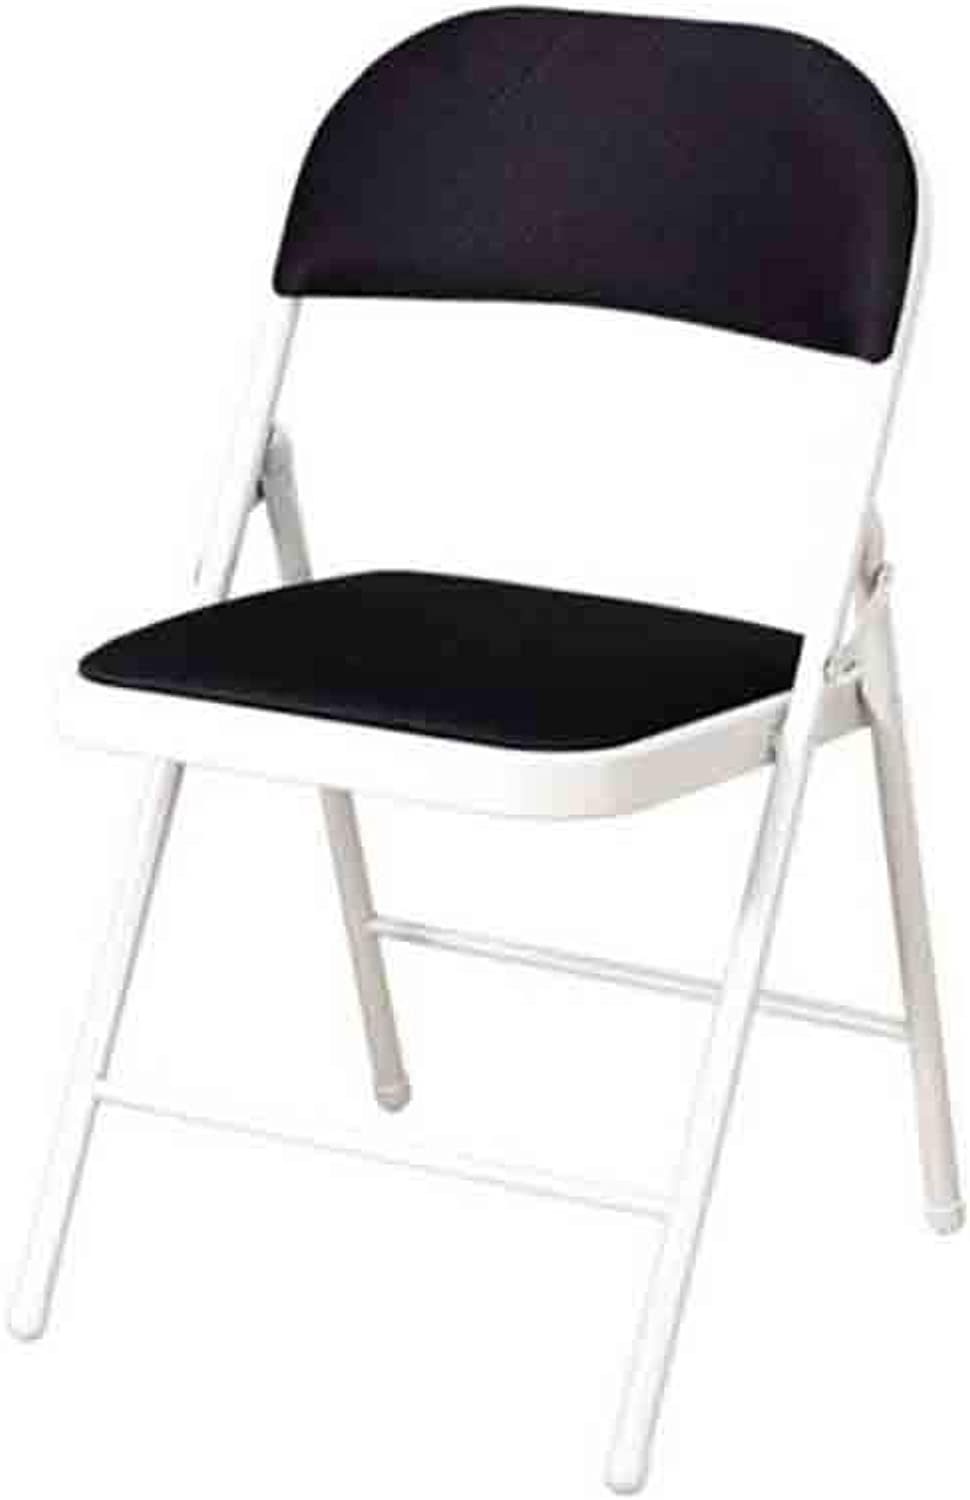 WGXX Chairs Folding Mesh Chair, Home Office Computer Chair, Conference Staff Chair (color   Black)